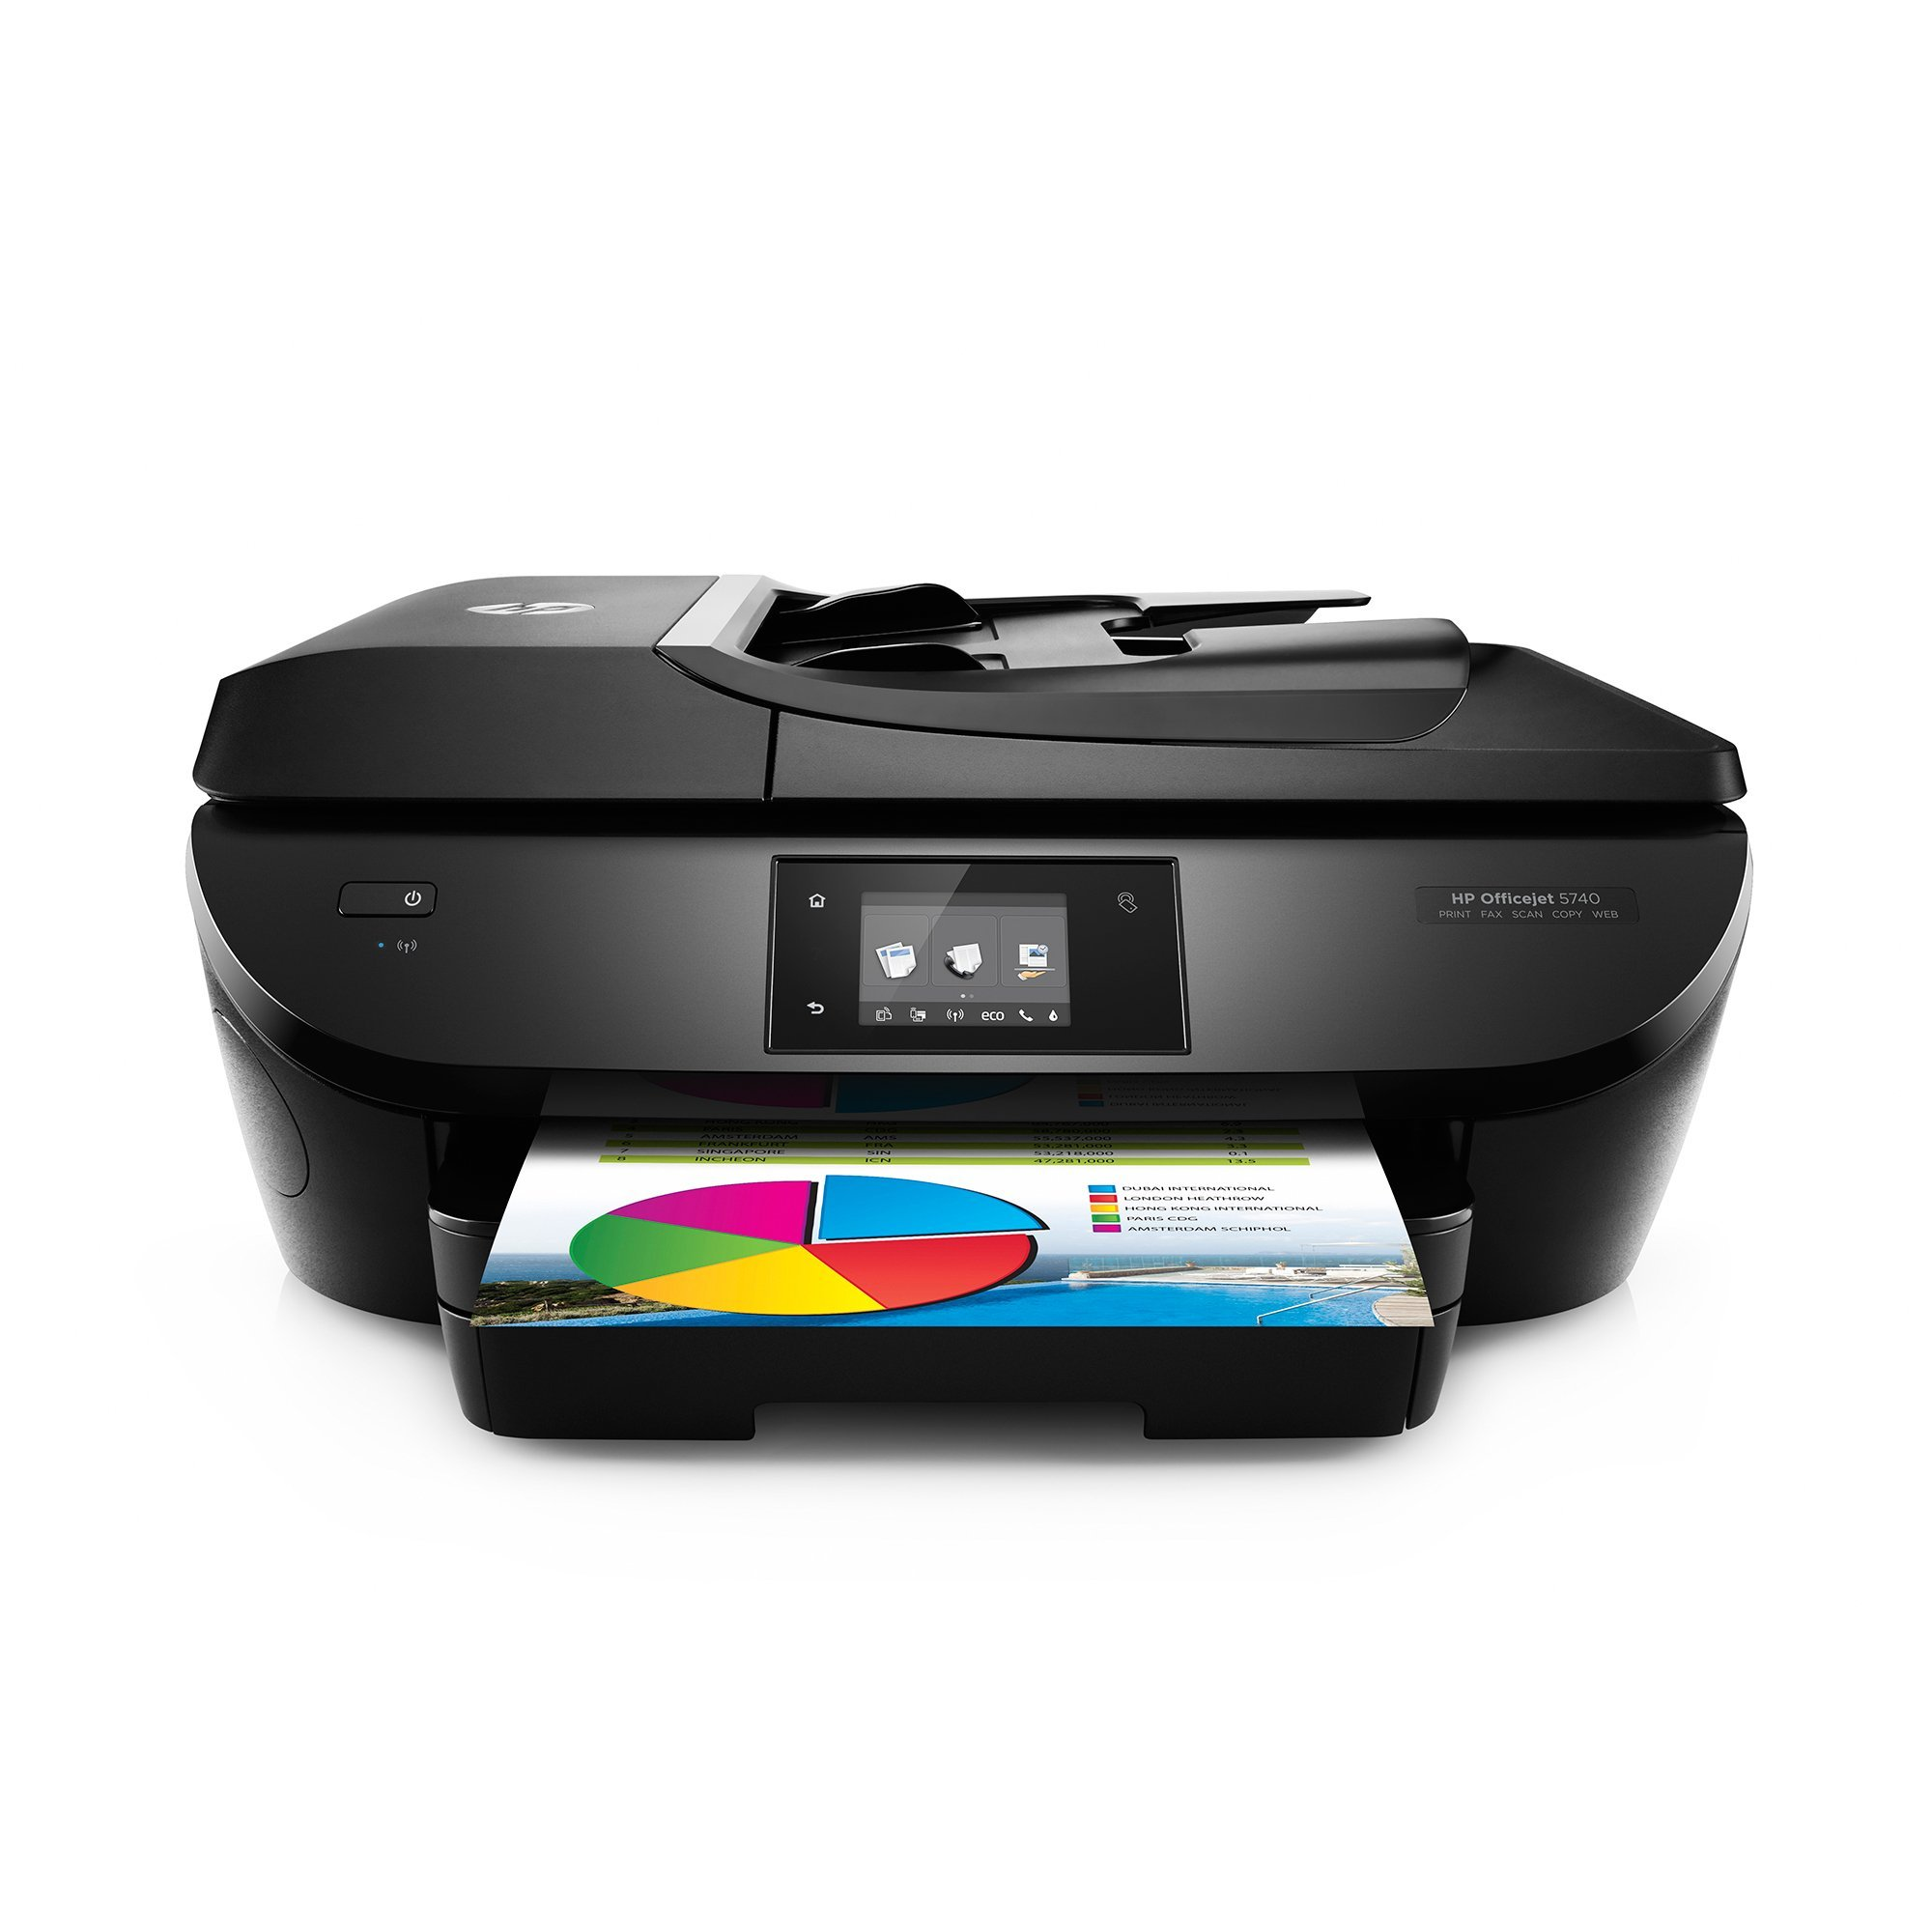 HP OfficeJet 5740 Wireless All-in-One Photo Printer with Mobile Printing, Instant Ink ready (Certified Refurbished)